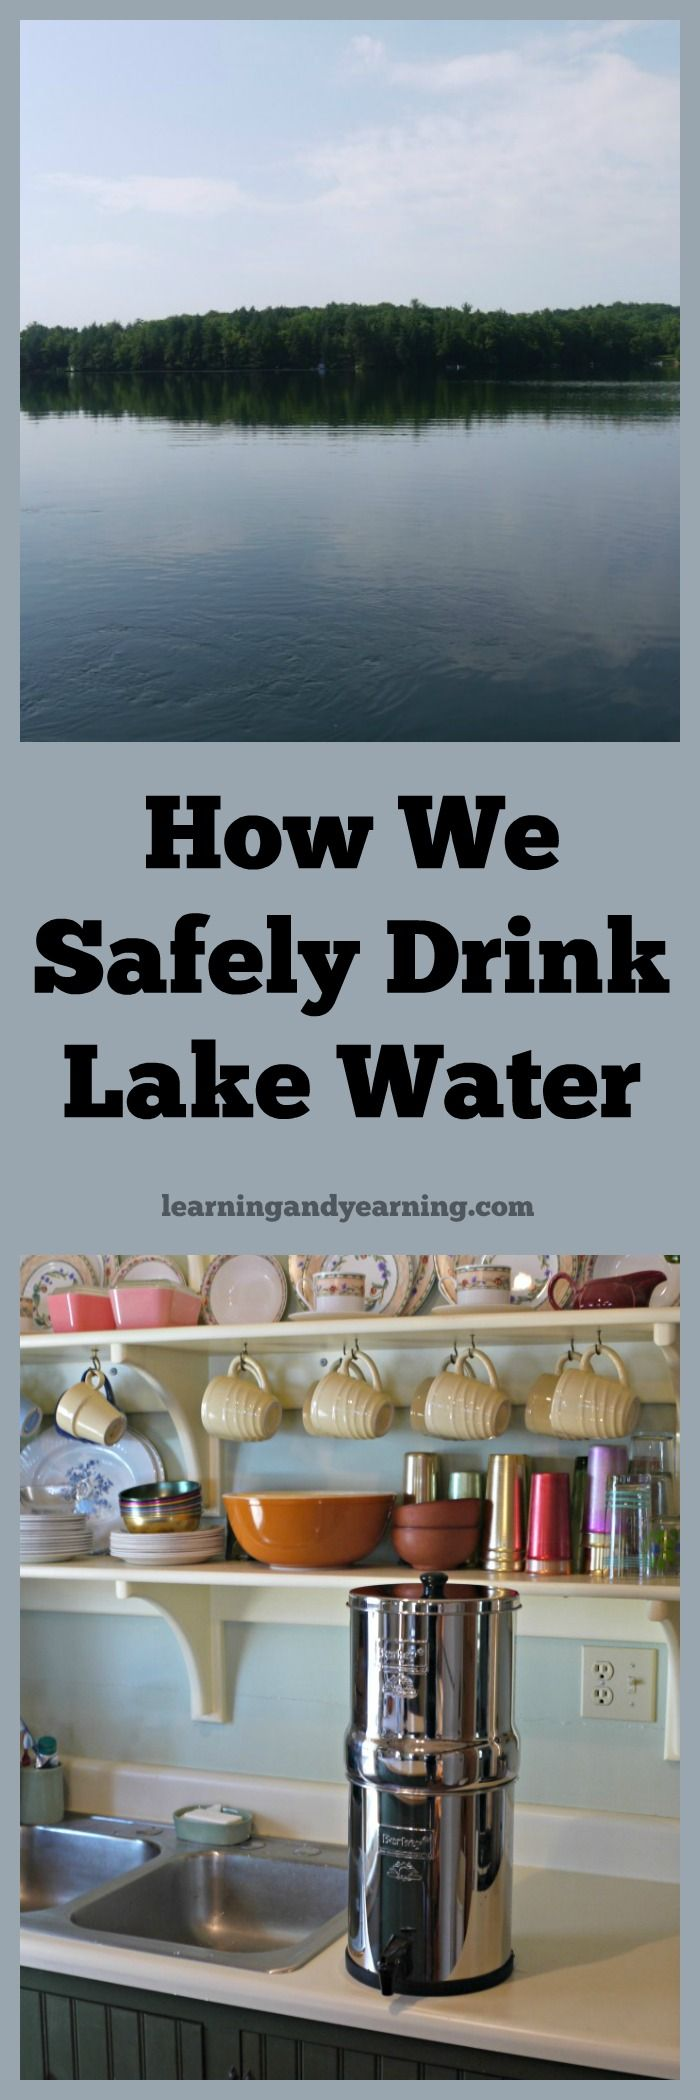 Our summer retreat doesn't have running water. For drinking water, we are able to safely drink lake water. Here's how we do it.: